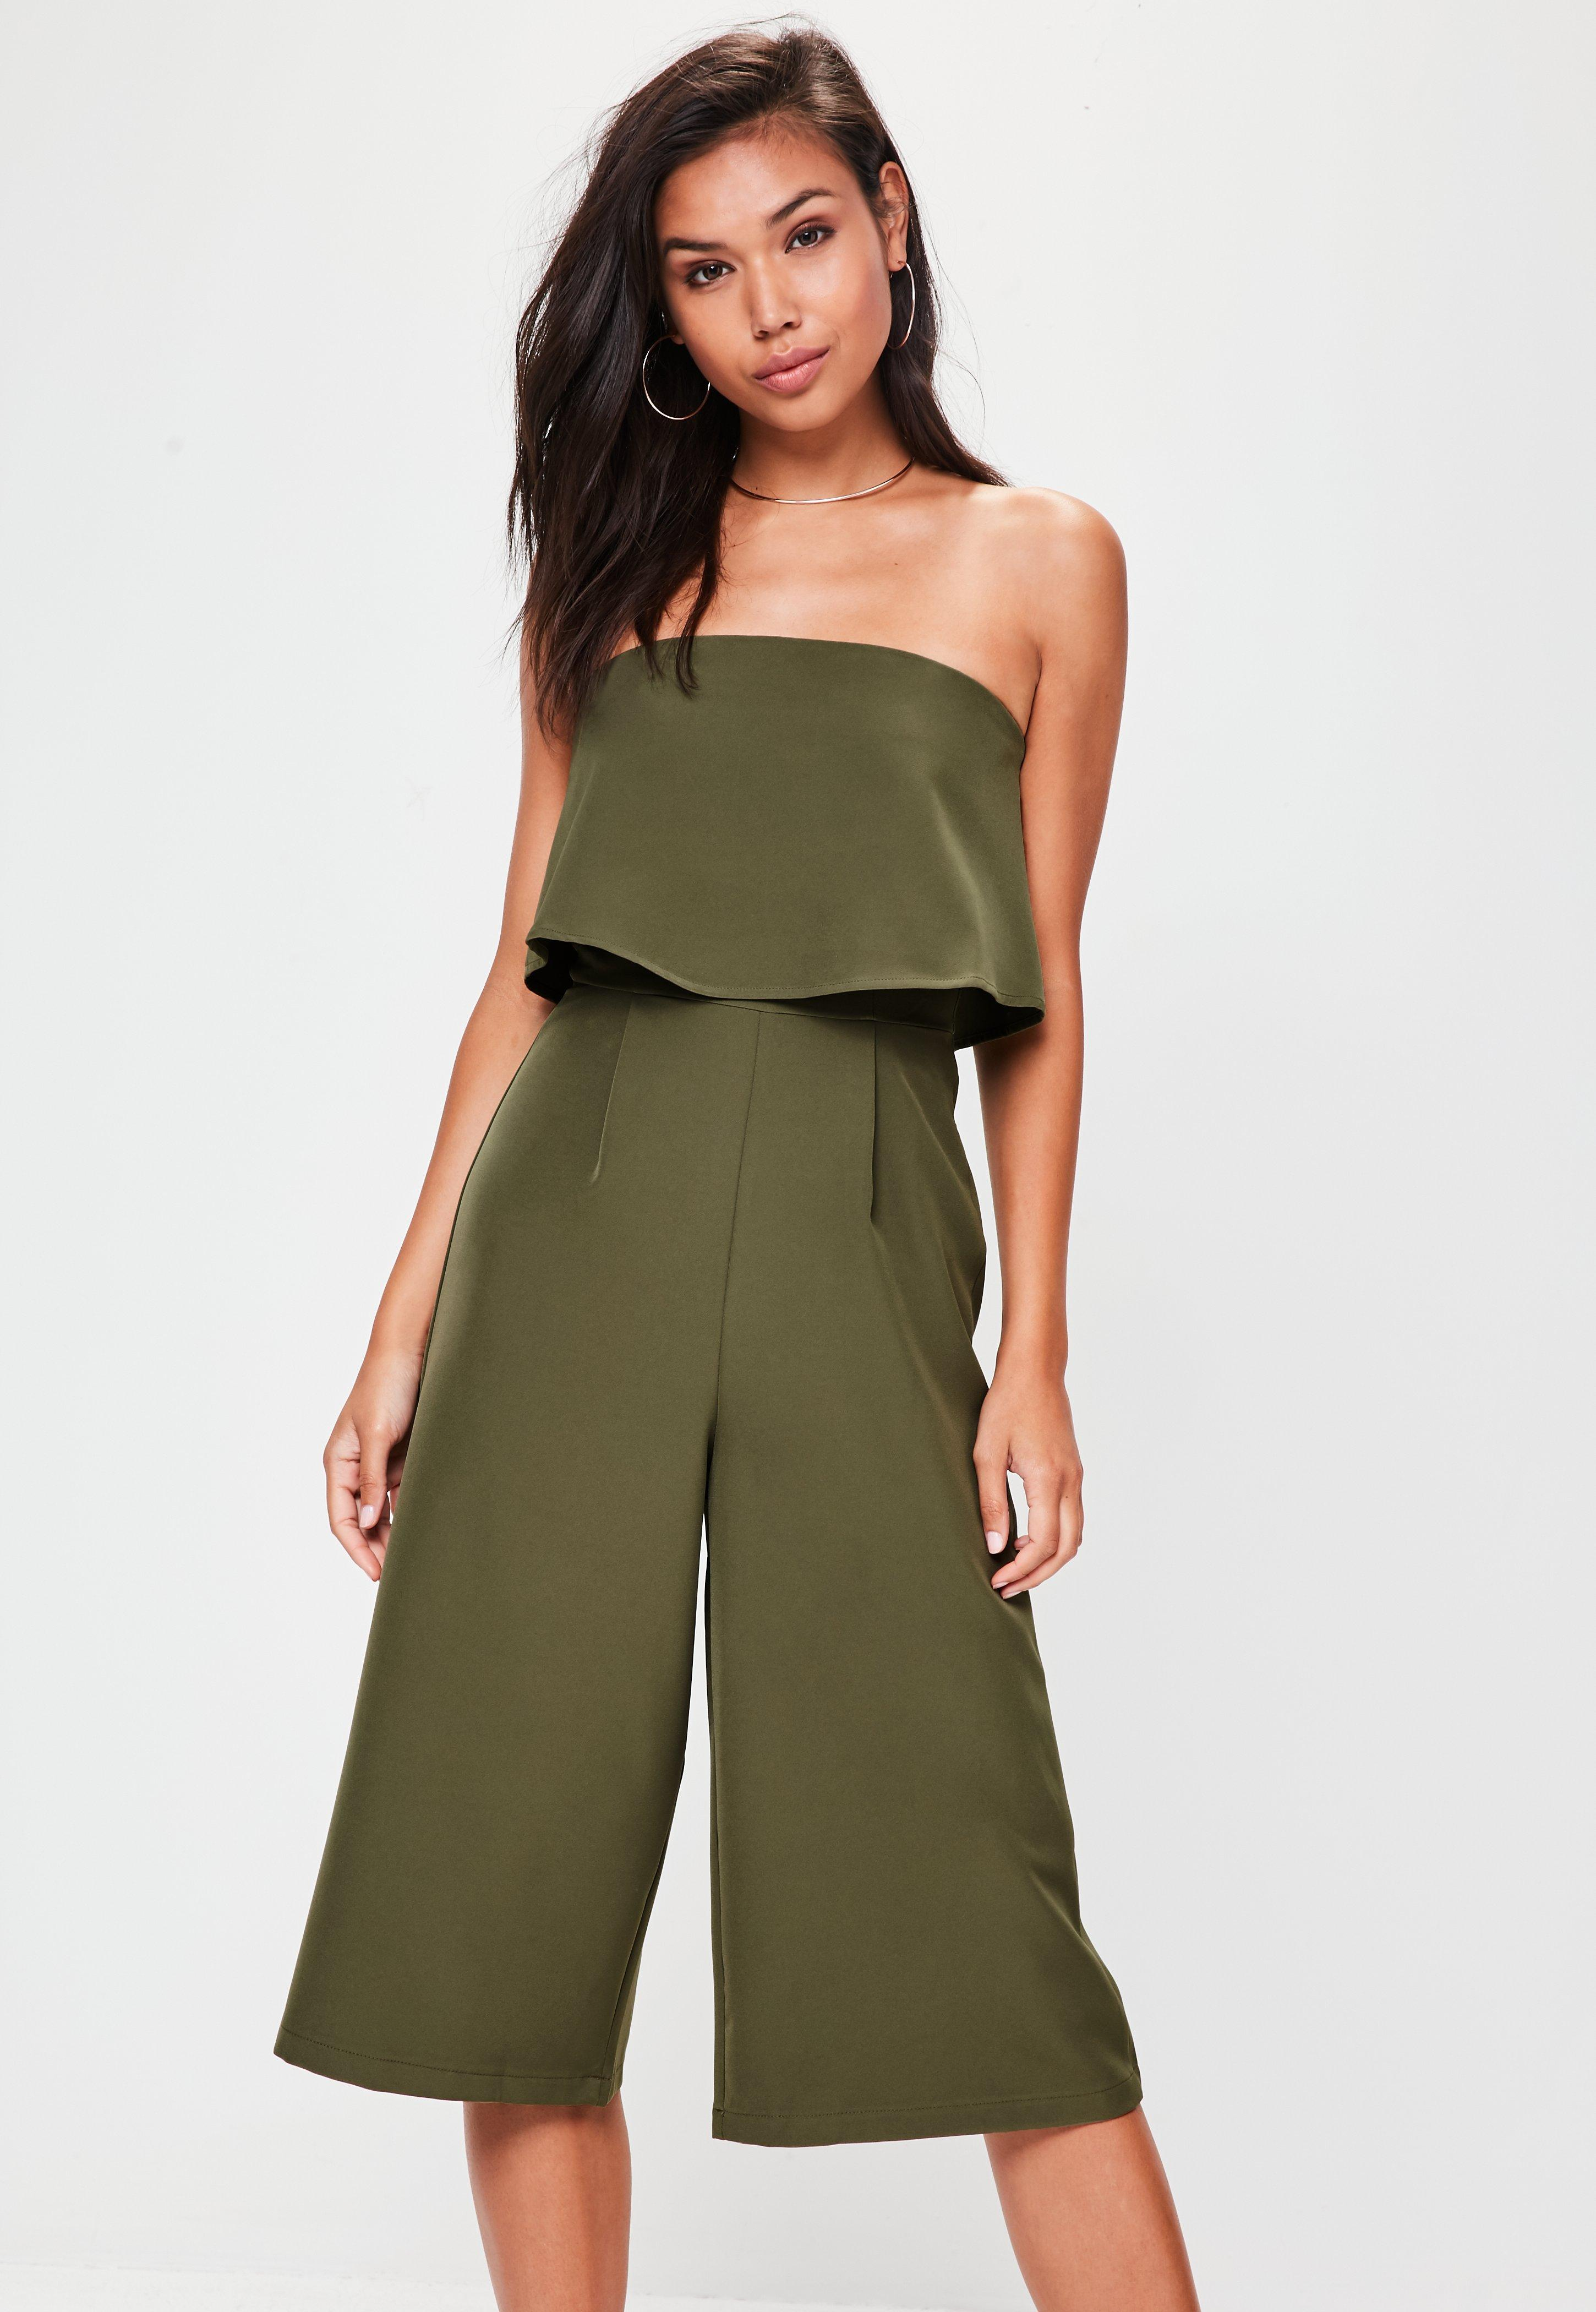 5f8013b8e91 Lyst - Missguided Khaki Crepe Double Layer Culotte Jumpsuit in Green ...